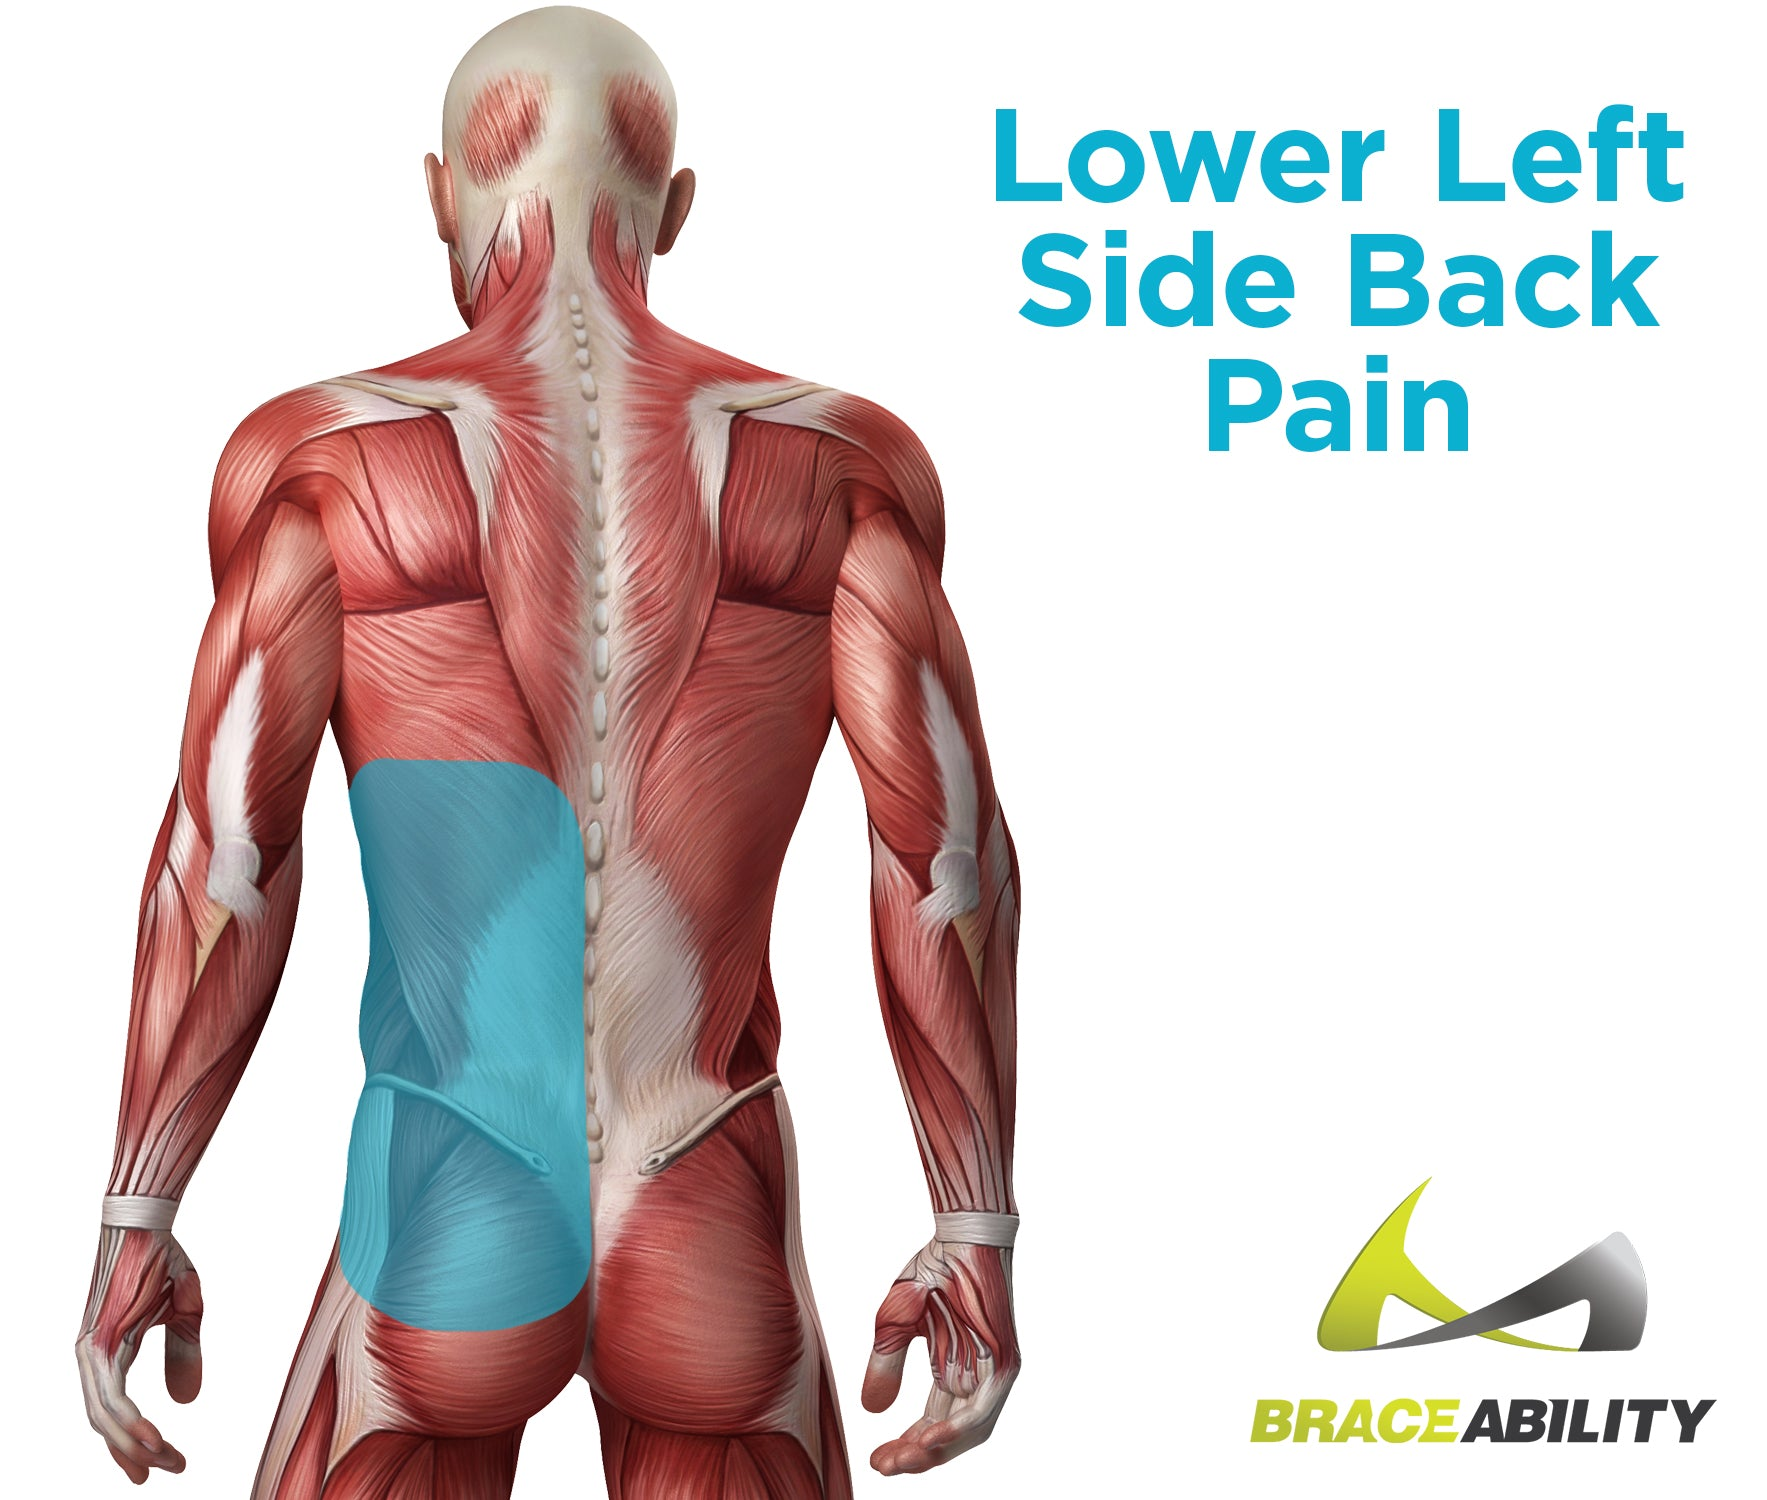 Symptoms of lower left side back and glute pain